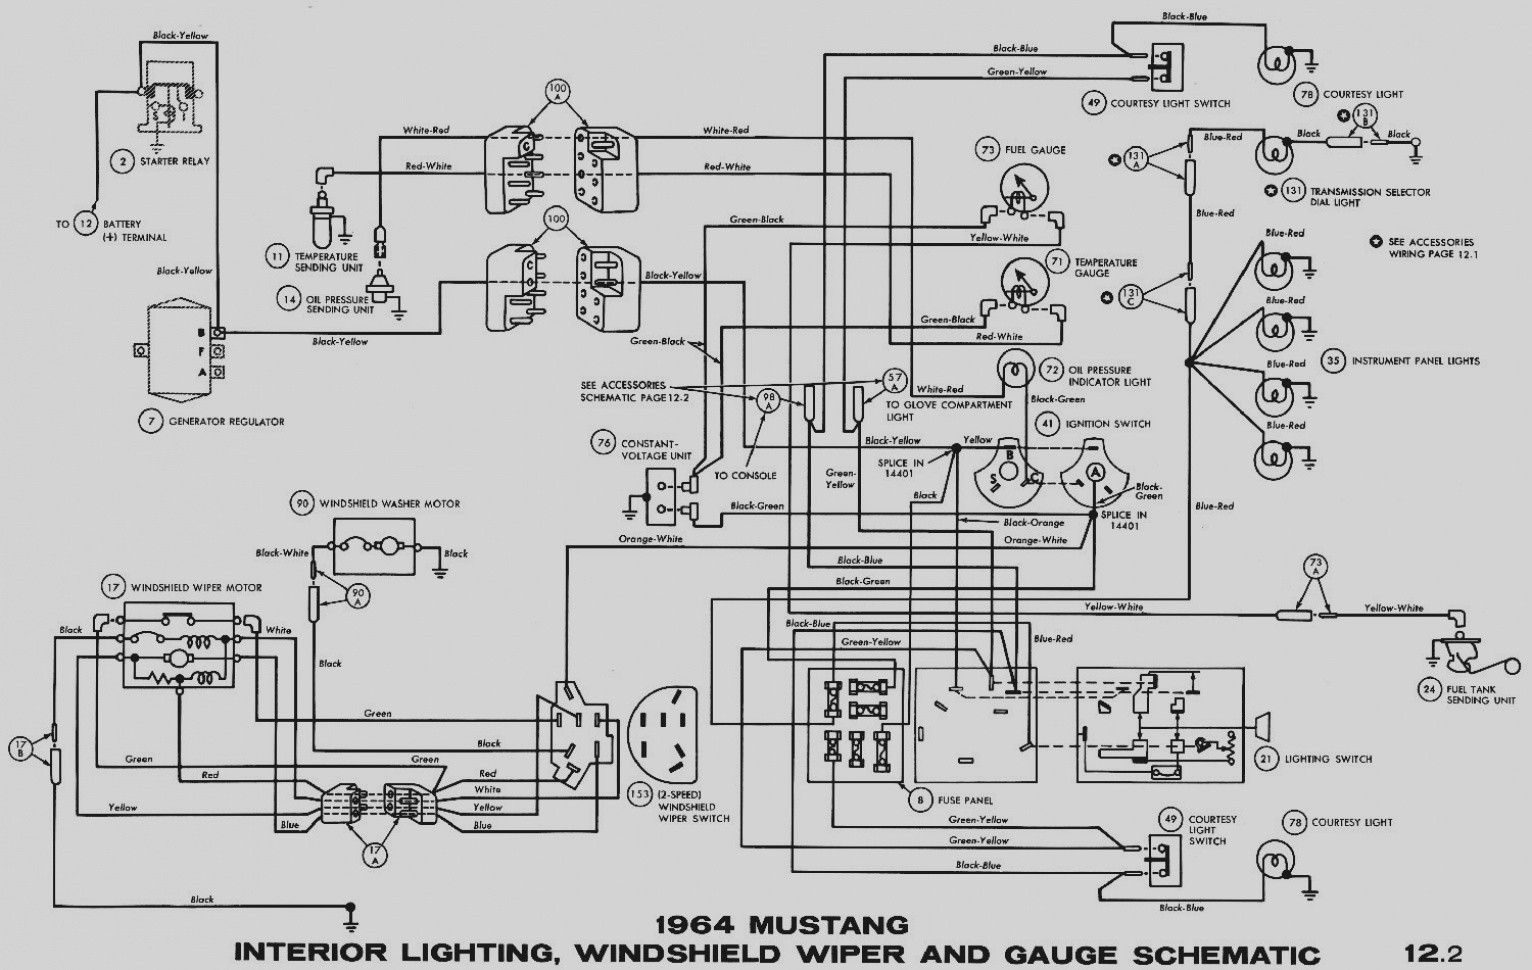 wiring diagram besides 1970 chevy c10 ignition switch wiring diagram rh sellfie co 1970 chevrolet wiring diagram 1970 chevy alternator wiring diagram